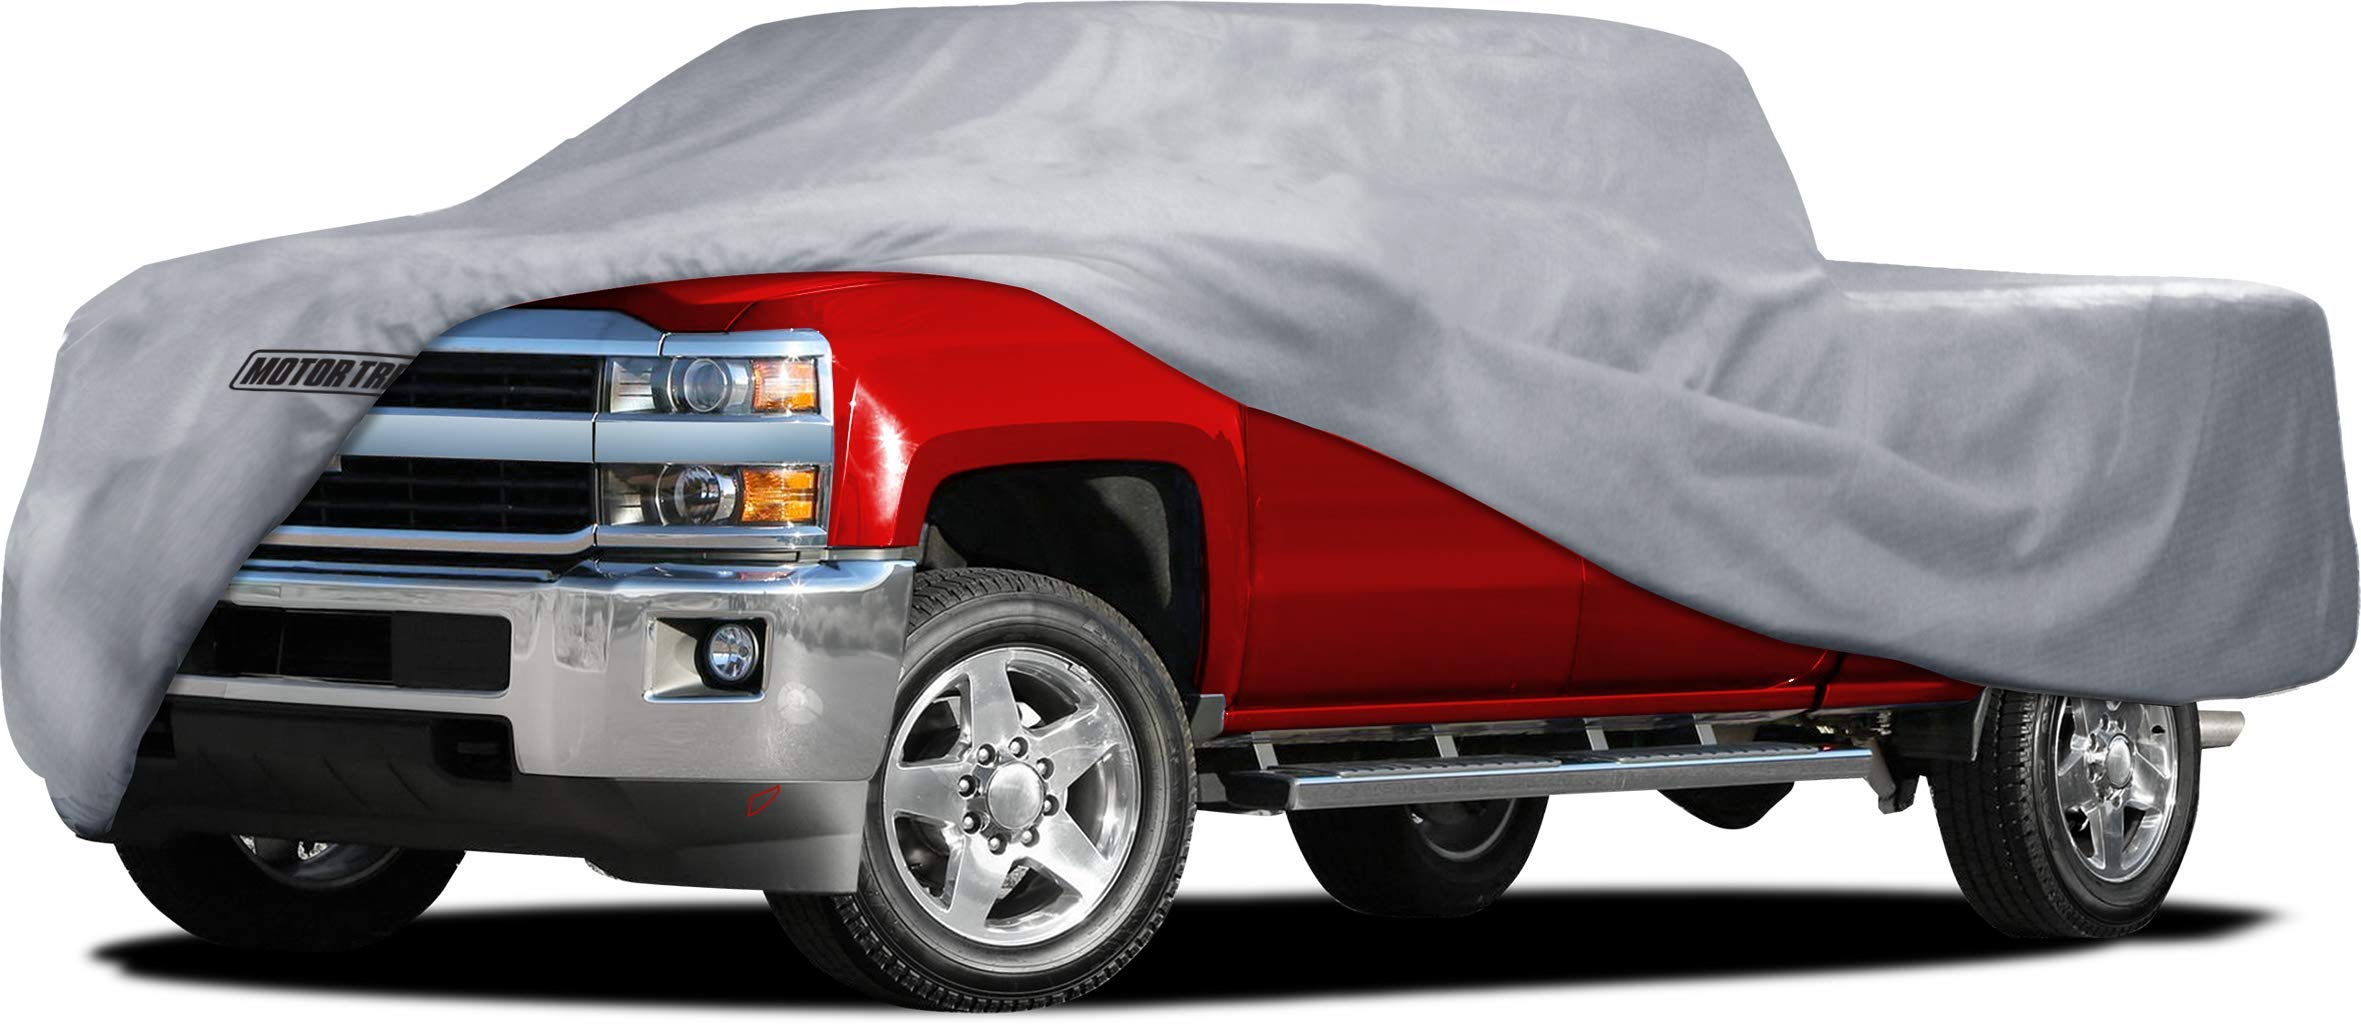 Motor Trend M2-TC7 XXLarge Multi-Layer 4-Season (Waterproof Outdoor UV Protection for Heavy Duty Use Full Car Cover for Pickup Truck Size XXL)